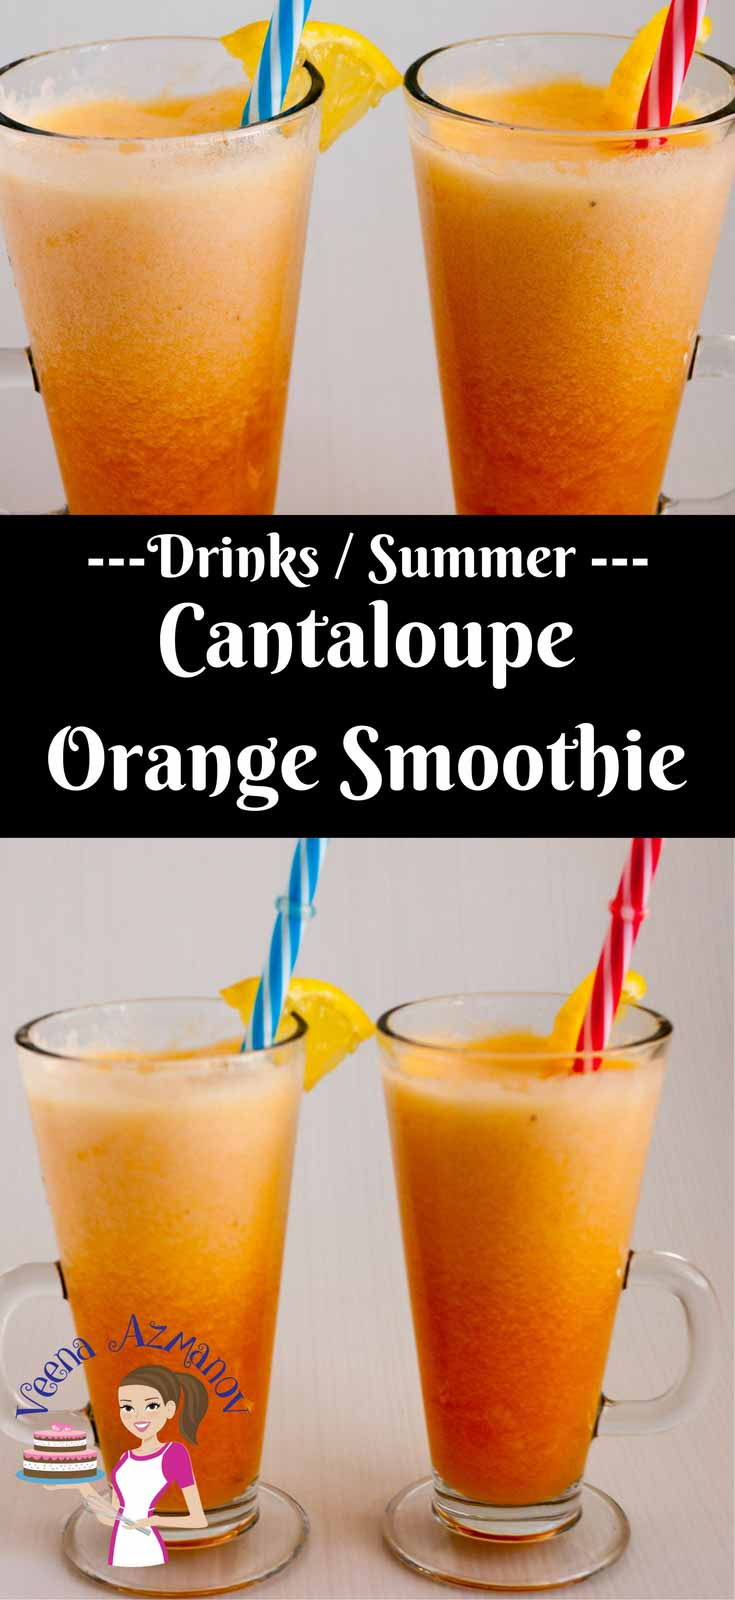 This seasonal summer cantaloupe orange smoothie is a sweet treat you can have any time of the day. Packed full with nutrition and natural sweetness. Yes, Cantaloupe being naturally sweet needs no extra added sugar too!